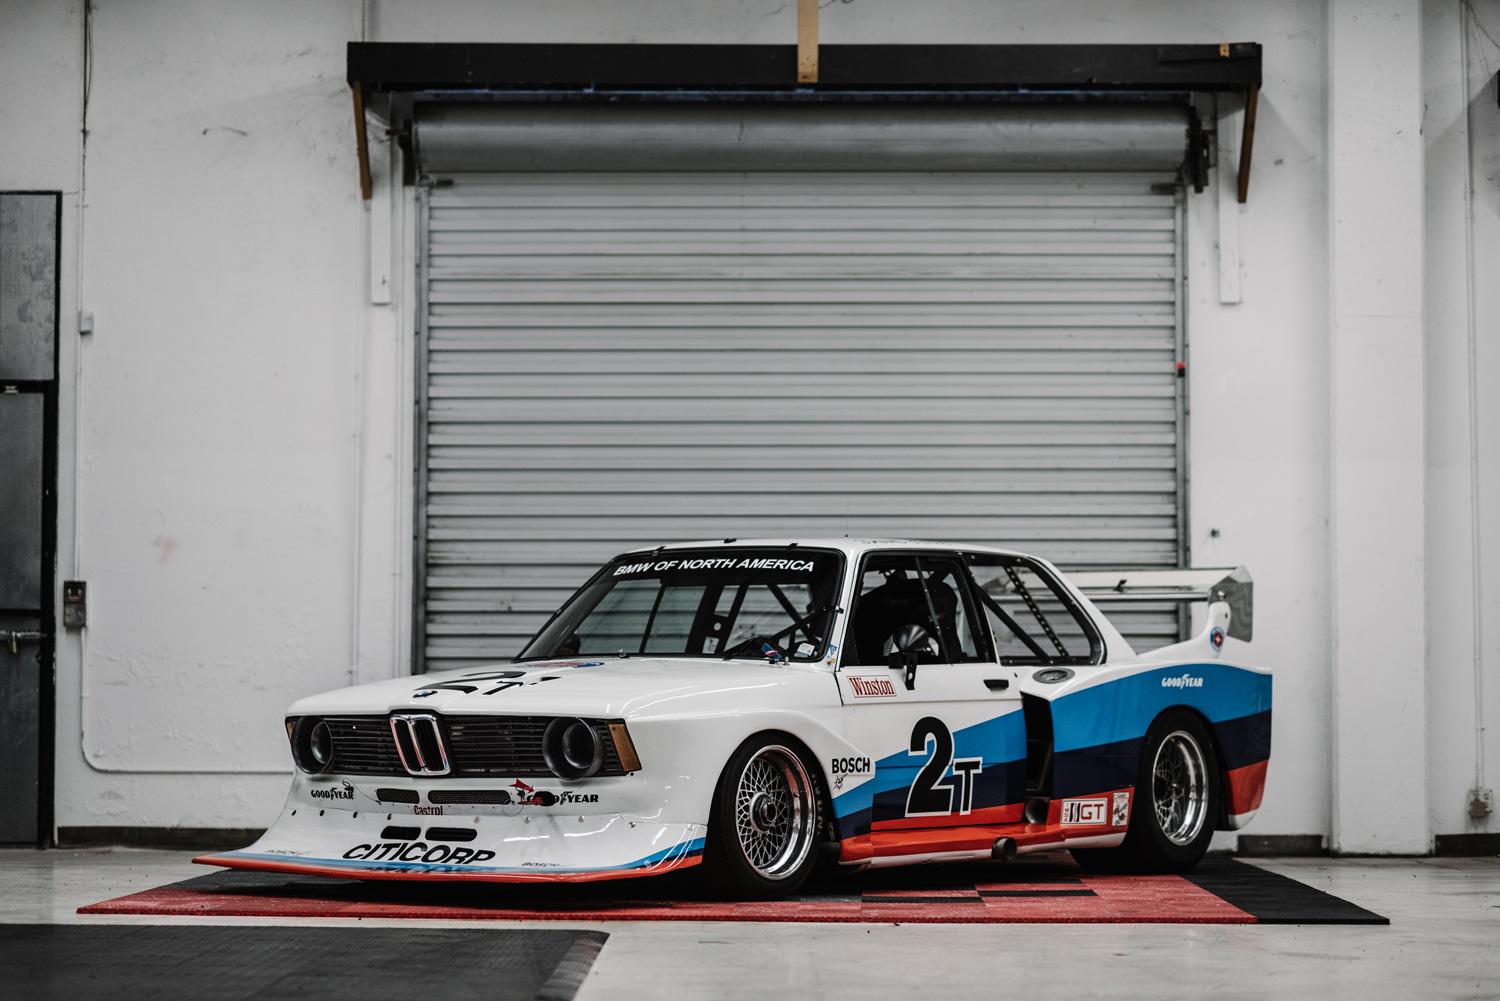 1978 BMW 320i Turbo IMSA